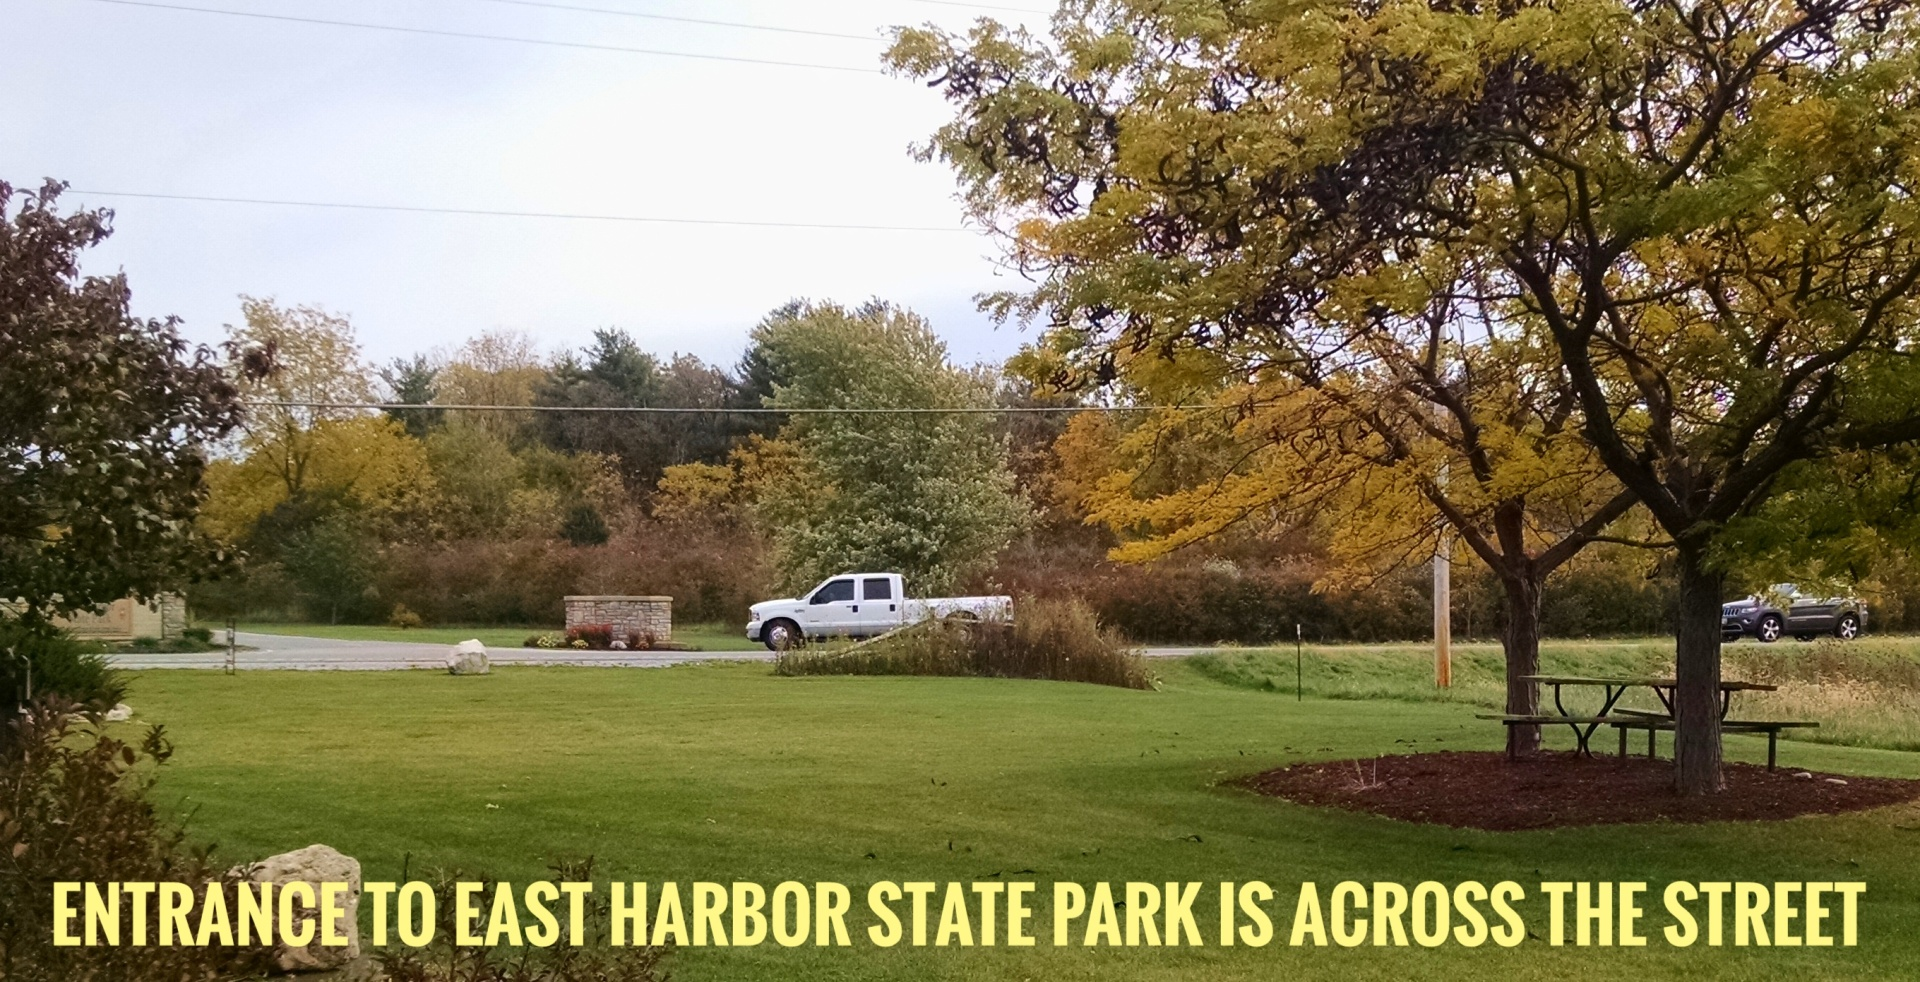 across from the State Park entrance